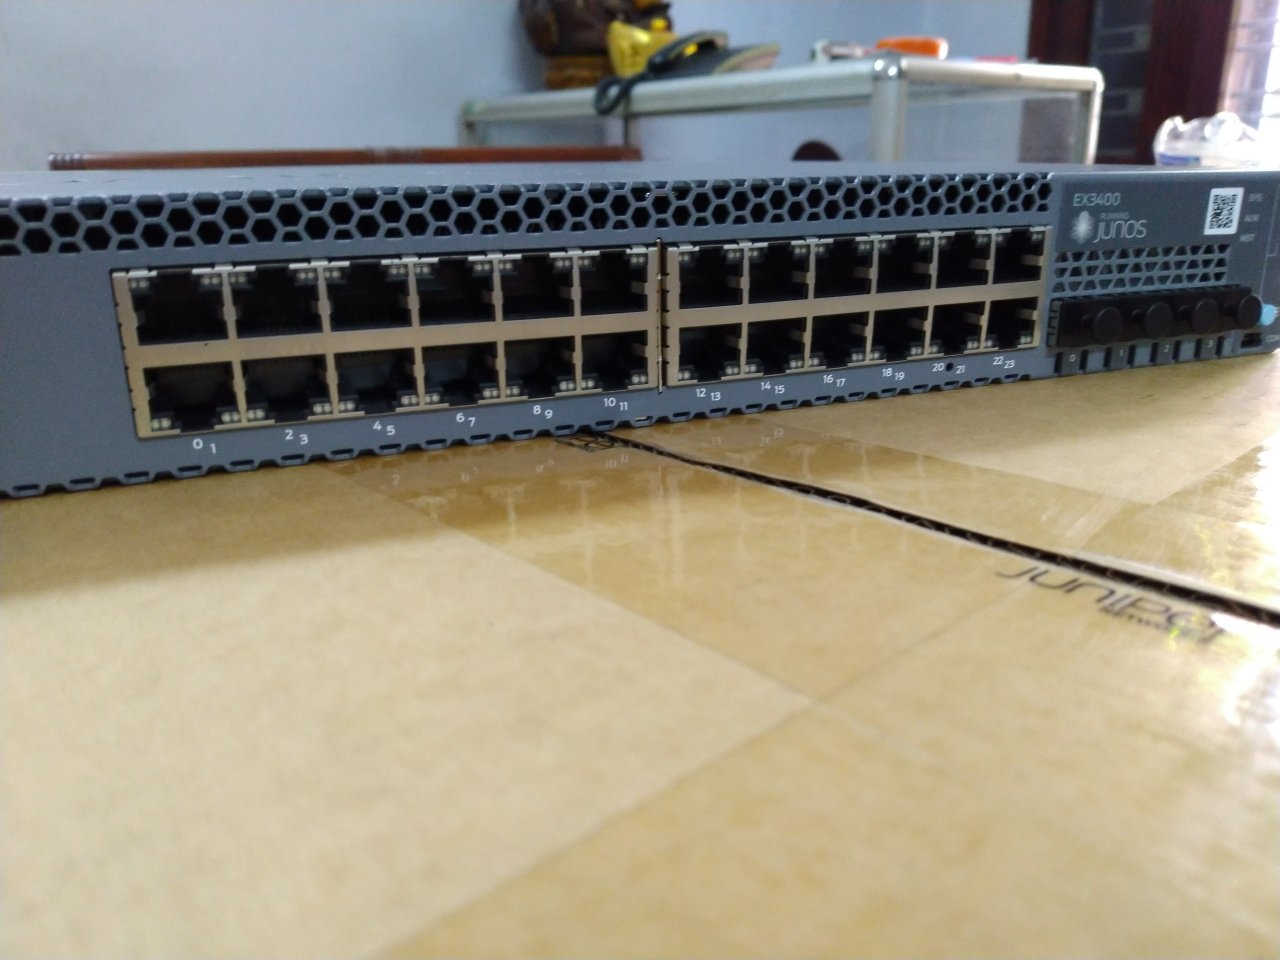 Switch Juniper EX3400